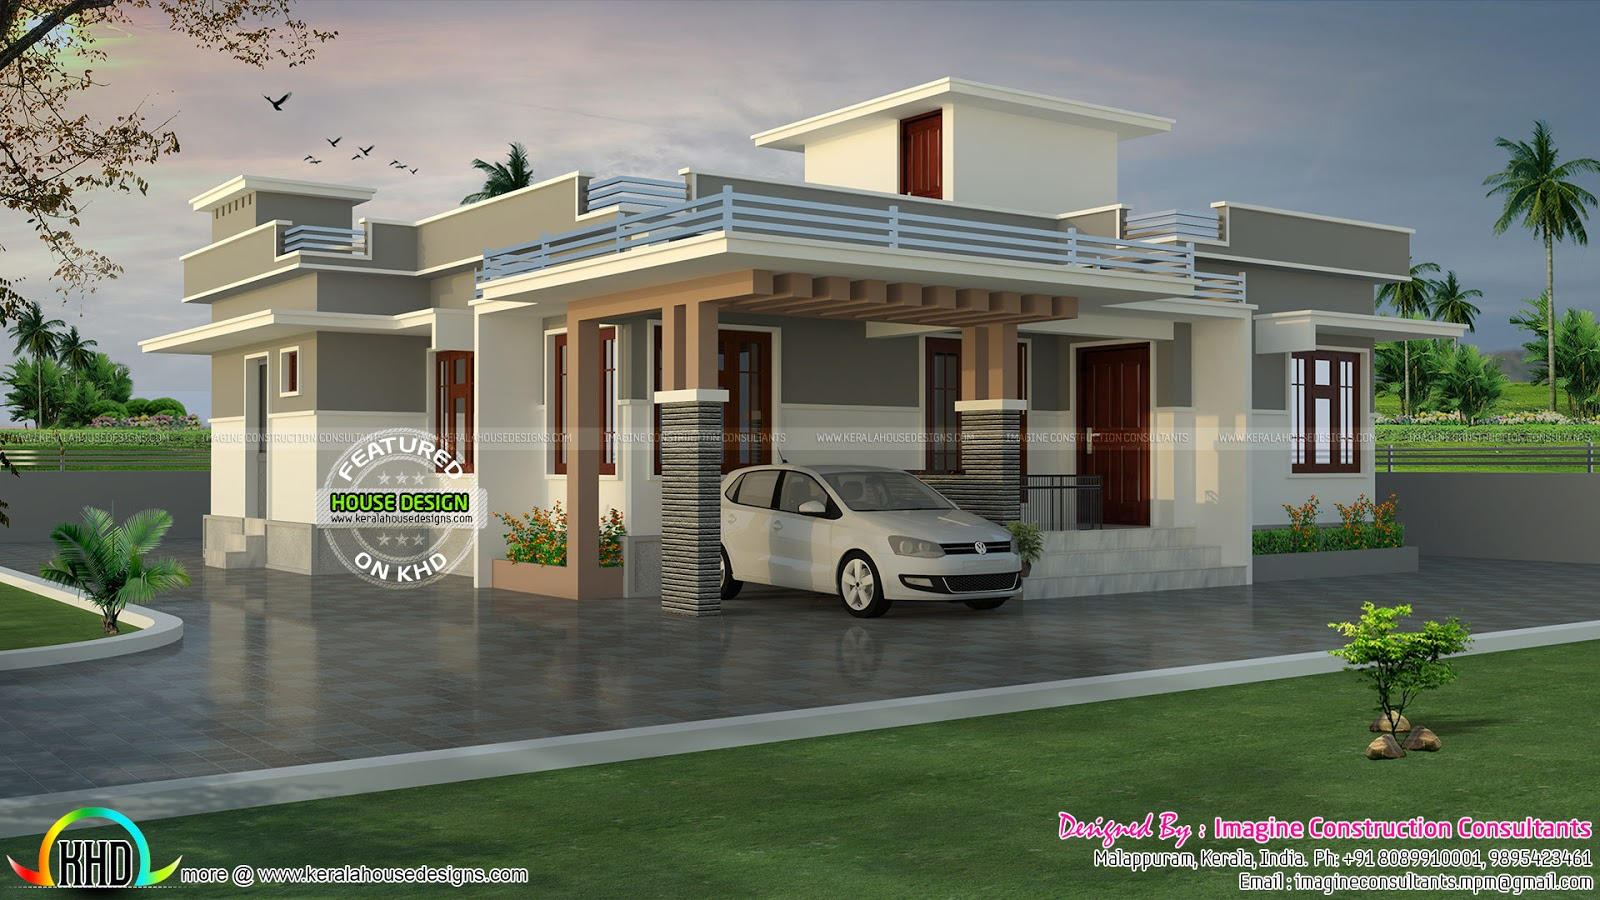 1200 sq ft lakhs cost estimated house plan kerala home design and floor plans Home design and budget